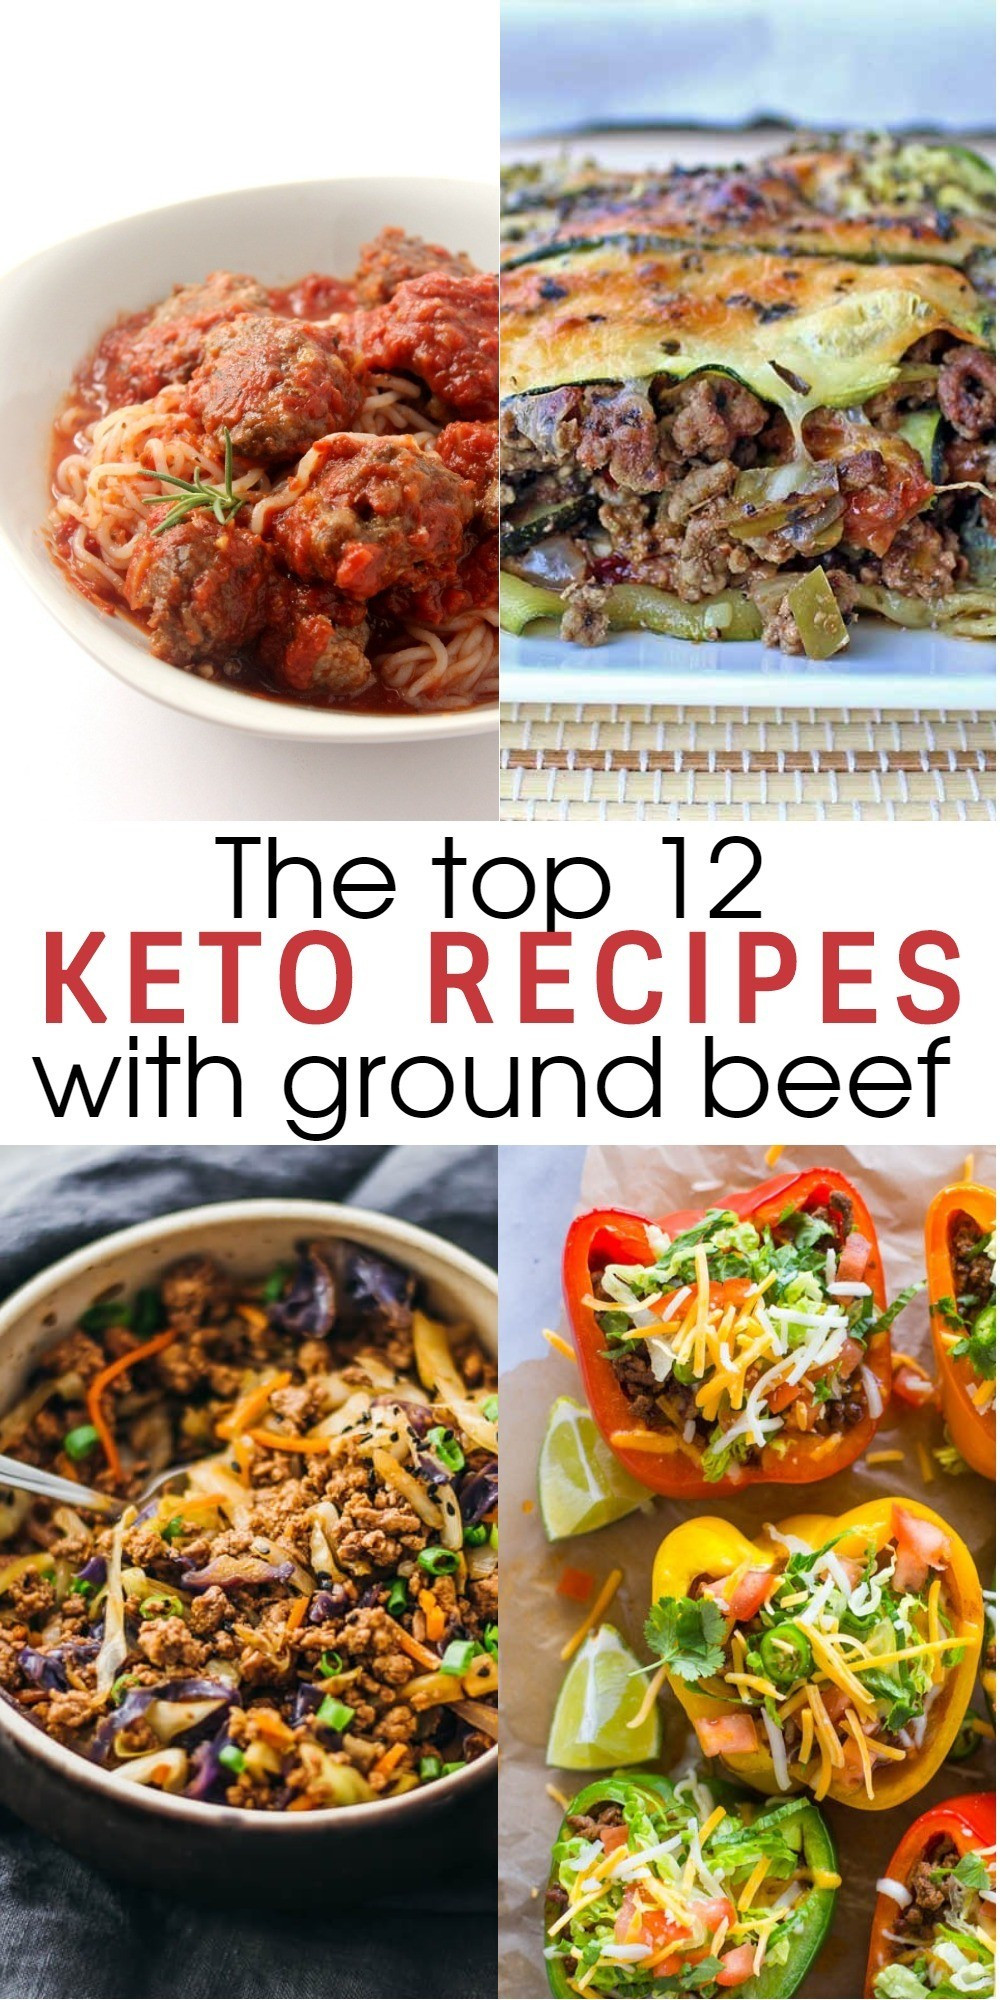 Hamburger Meat Recipes Low Carb Keto  12 Flavorful and Easy Keto Recipes With Ground Beef To Try